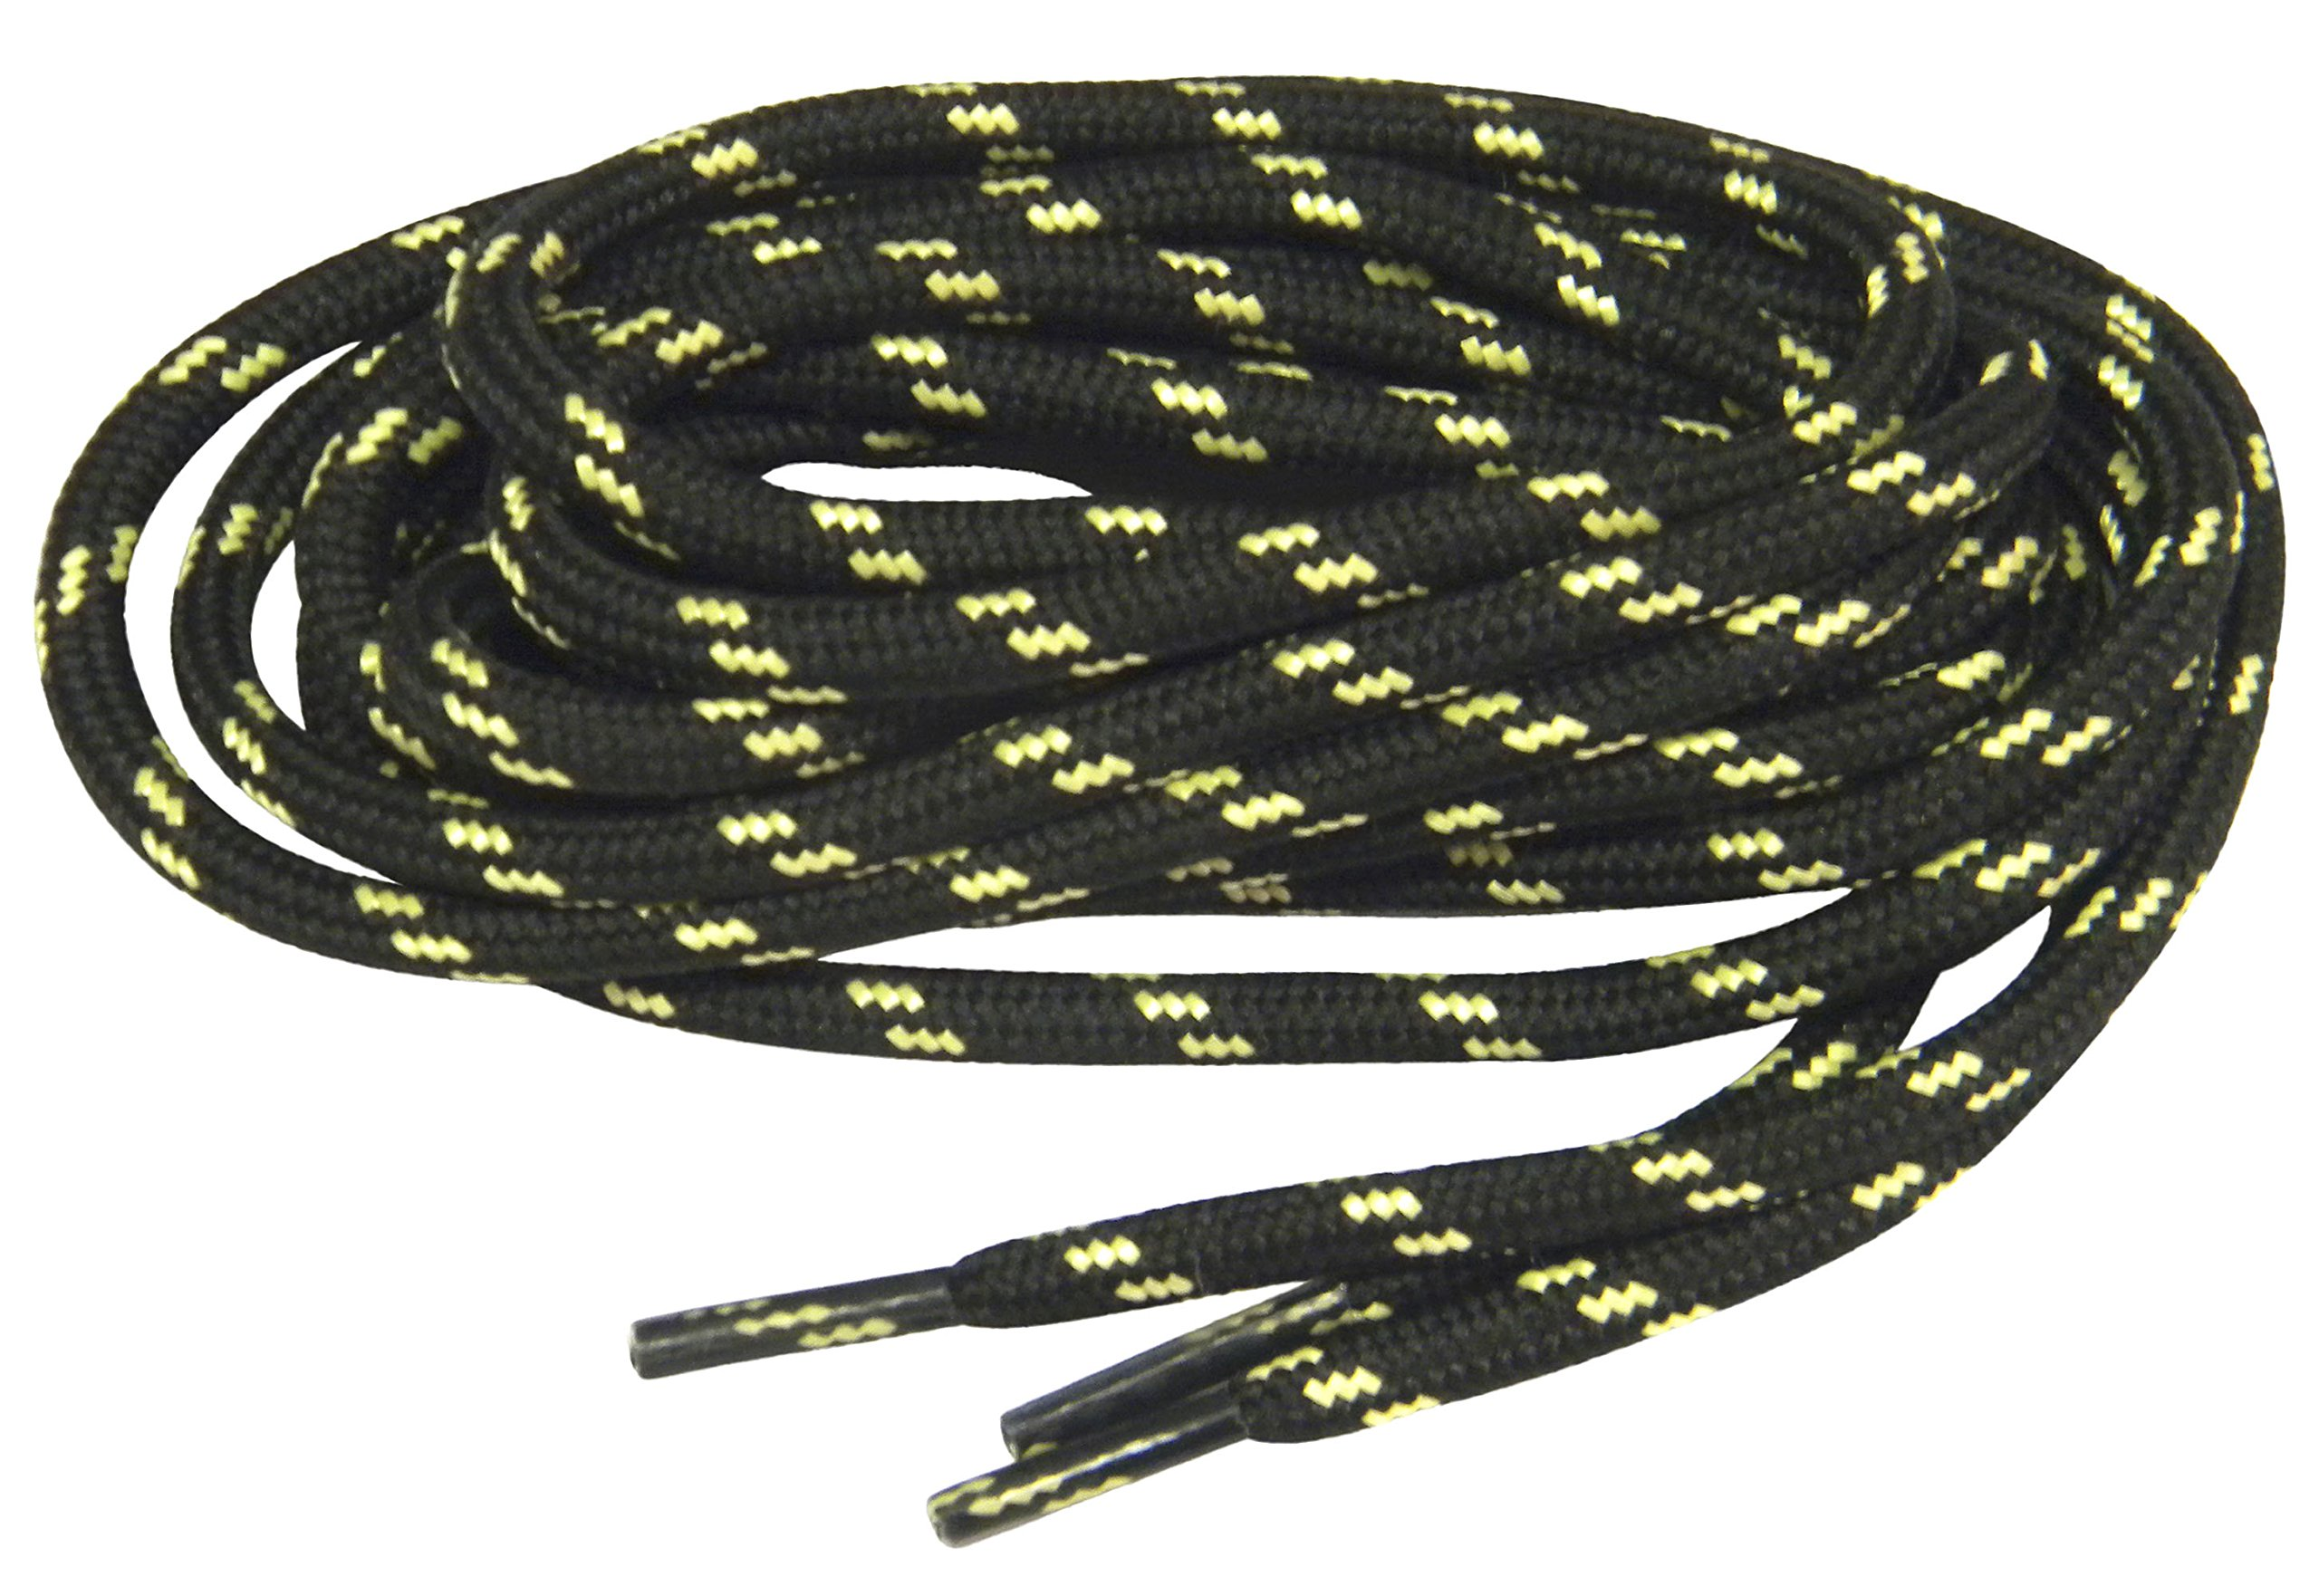 Black w/ Yellow Natural Kevlar proTOUGH(tm) Reinforced Heavy Duty Boot Laces Shoelaces (2 Pair Pack) (72 Inch 183 cm)